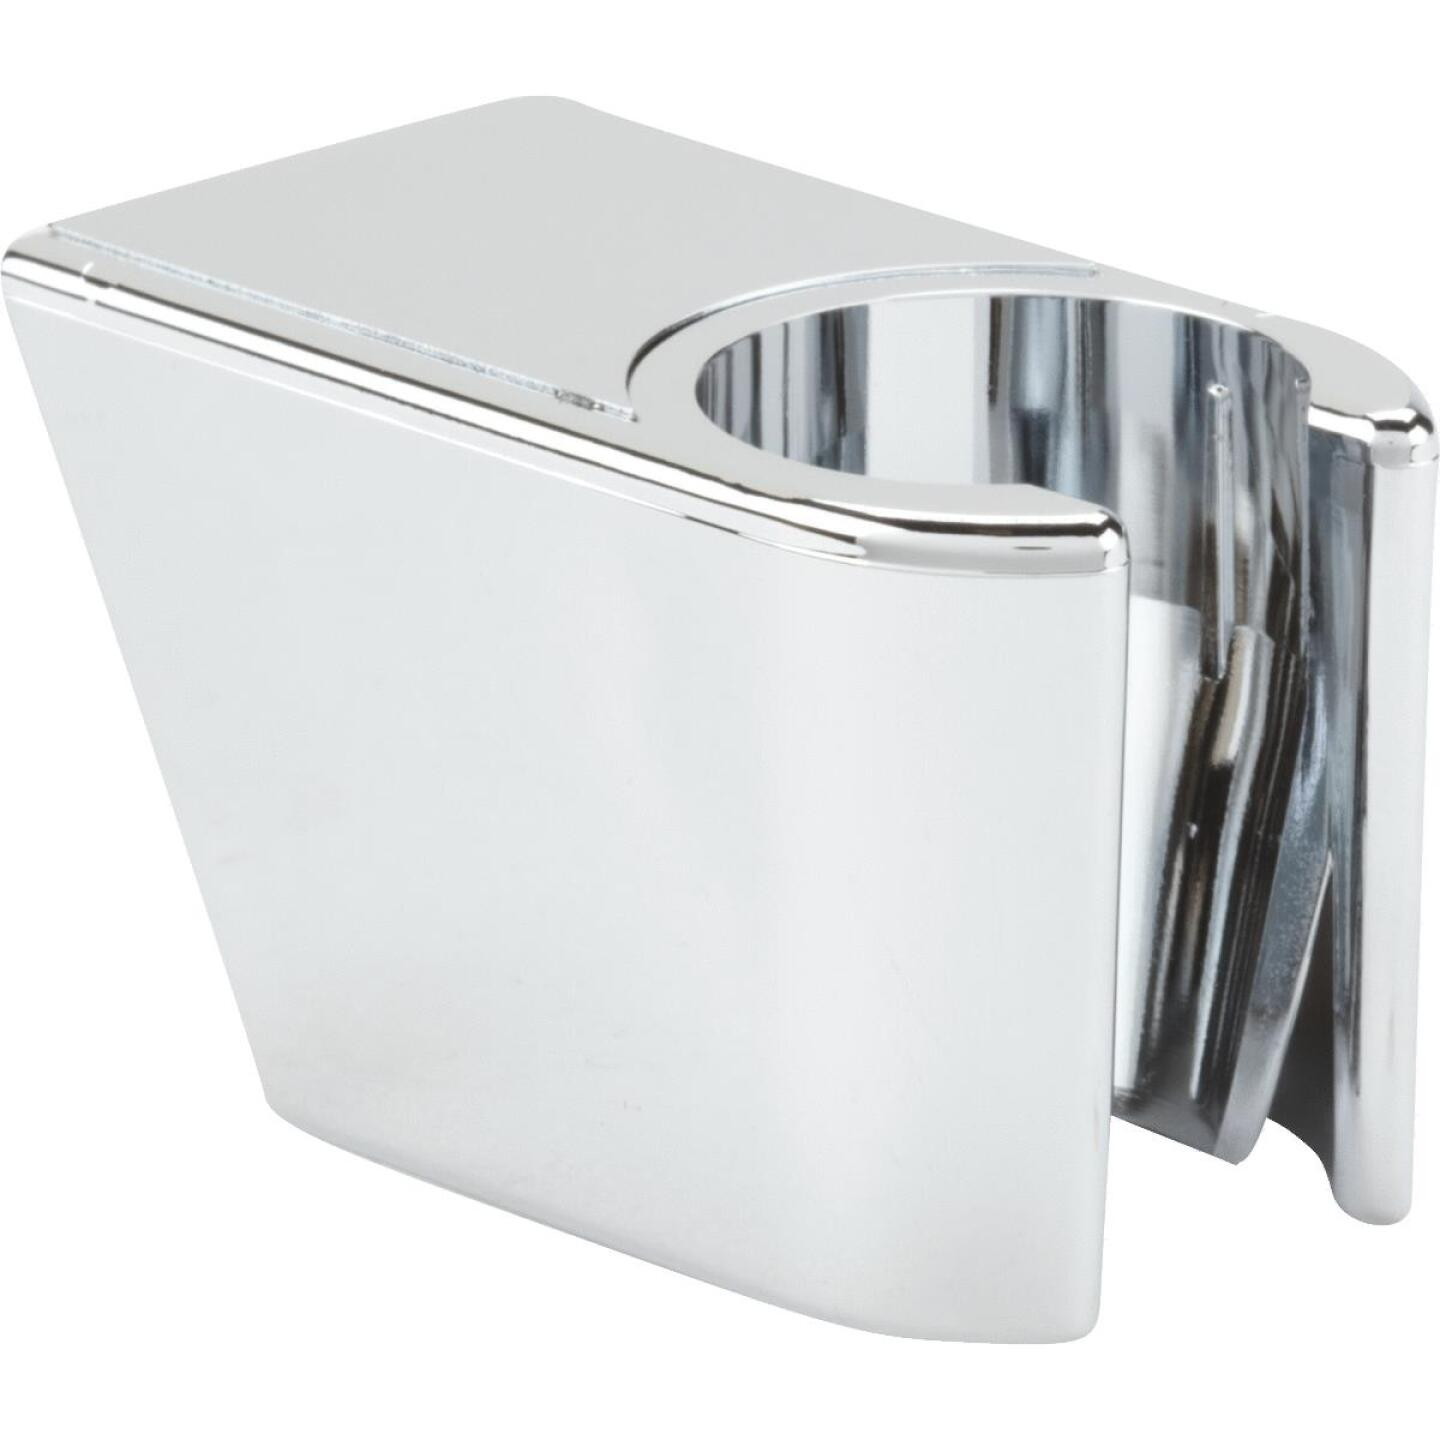 Do it Chrome Shower Wall Mount Image 1